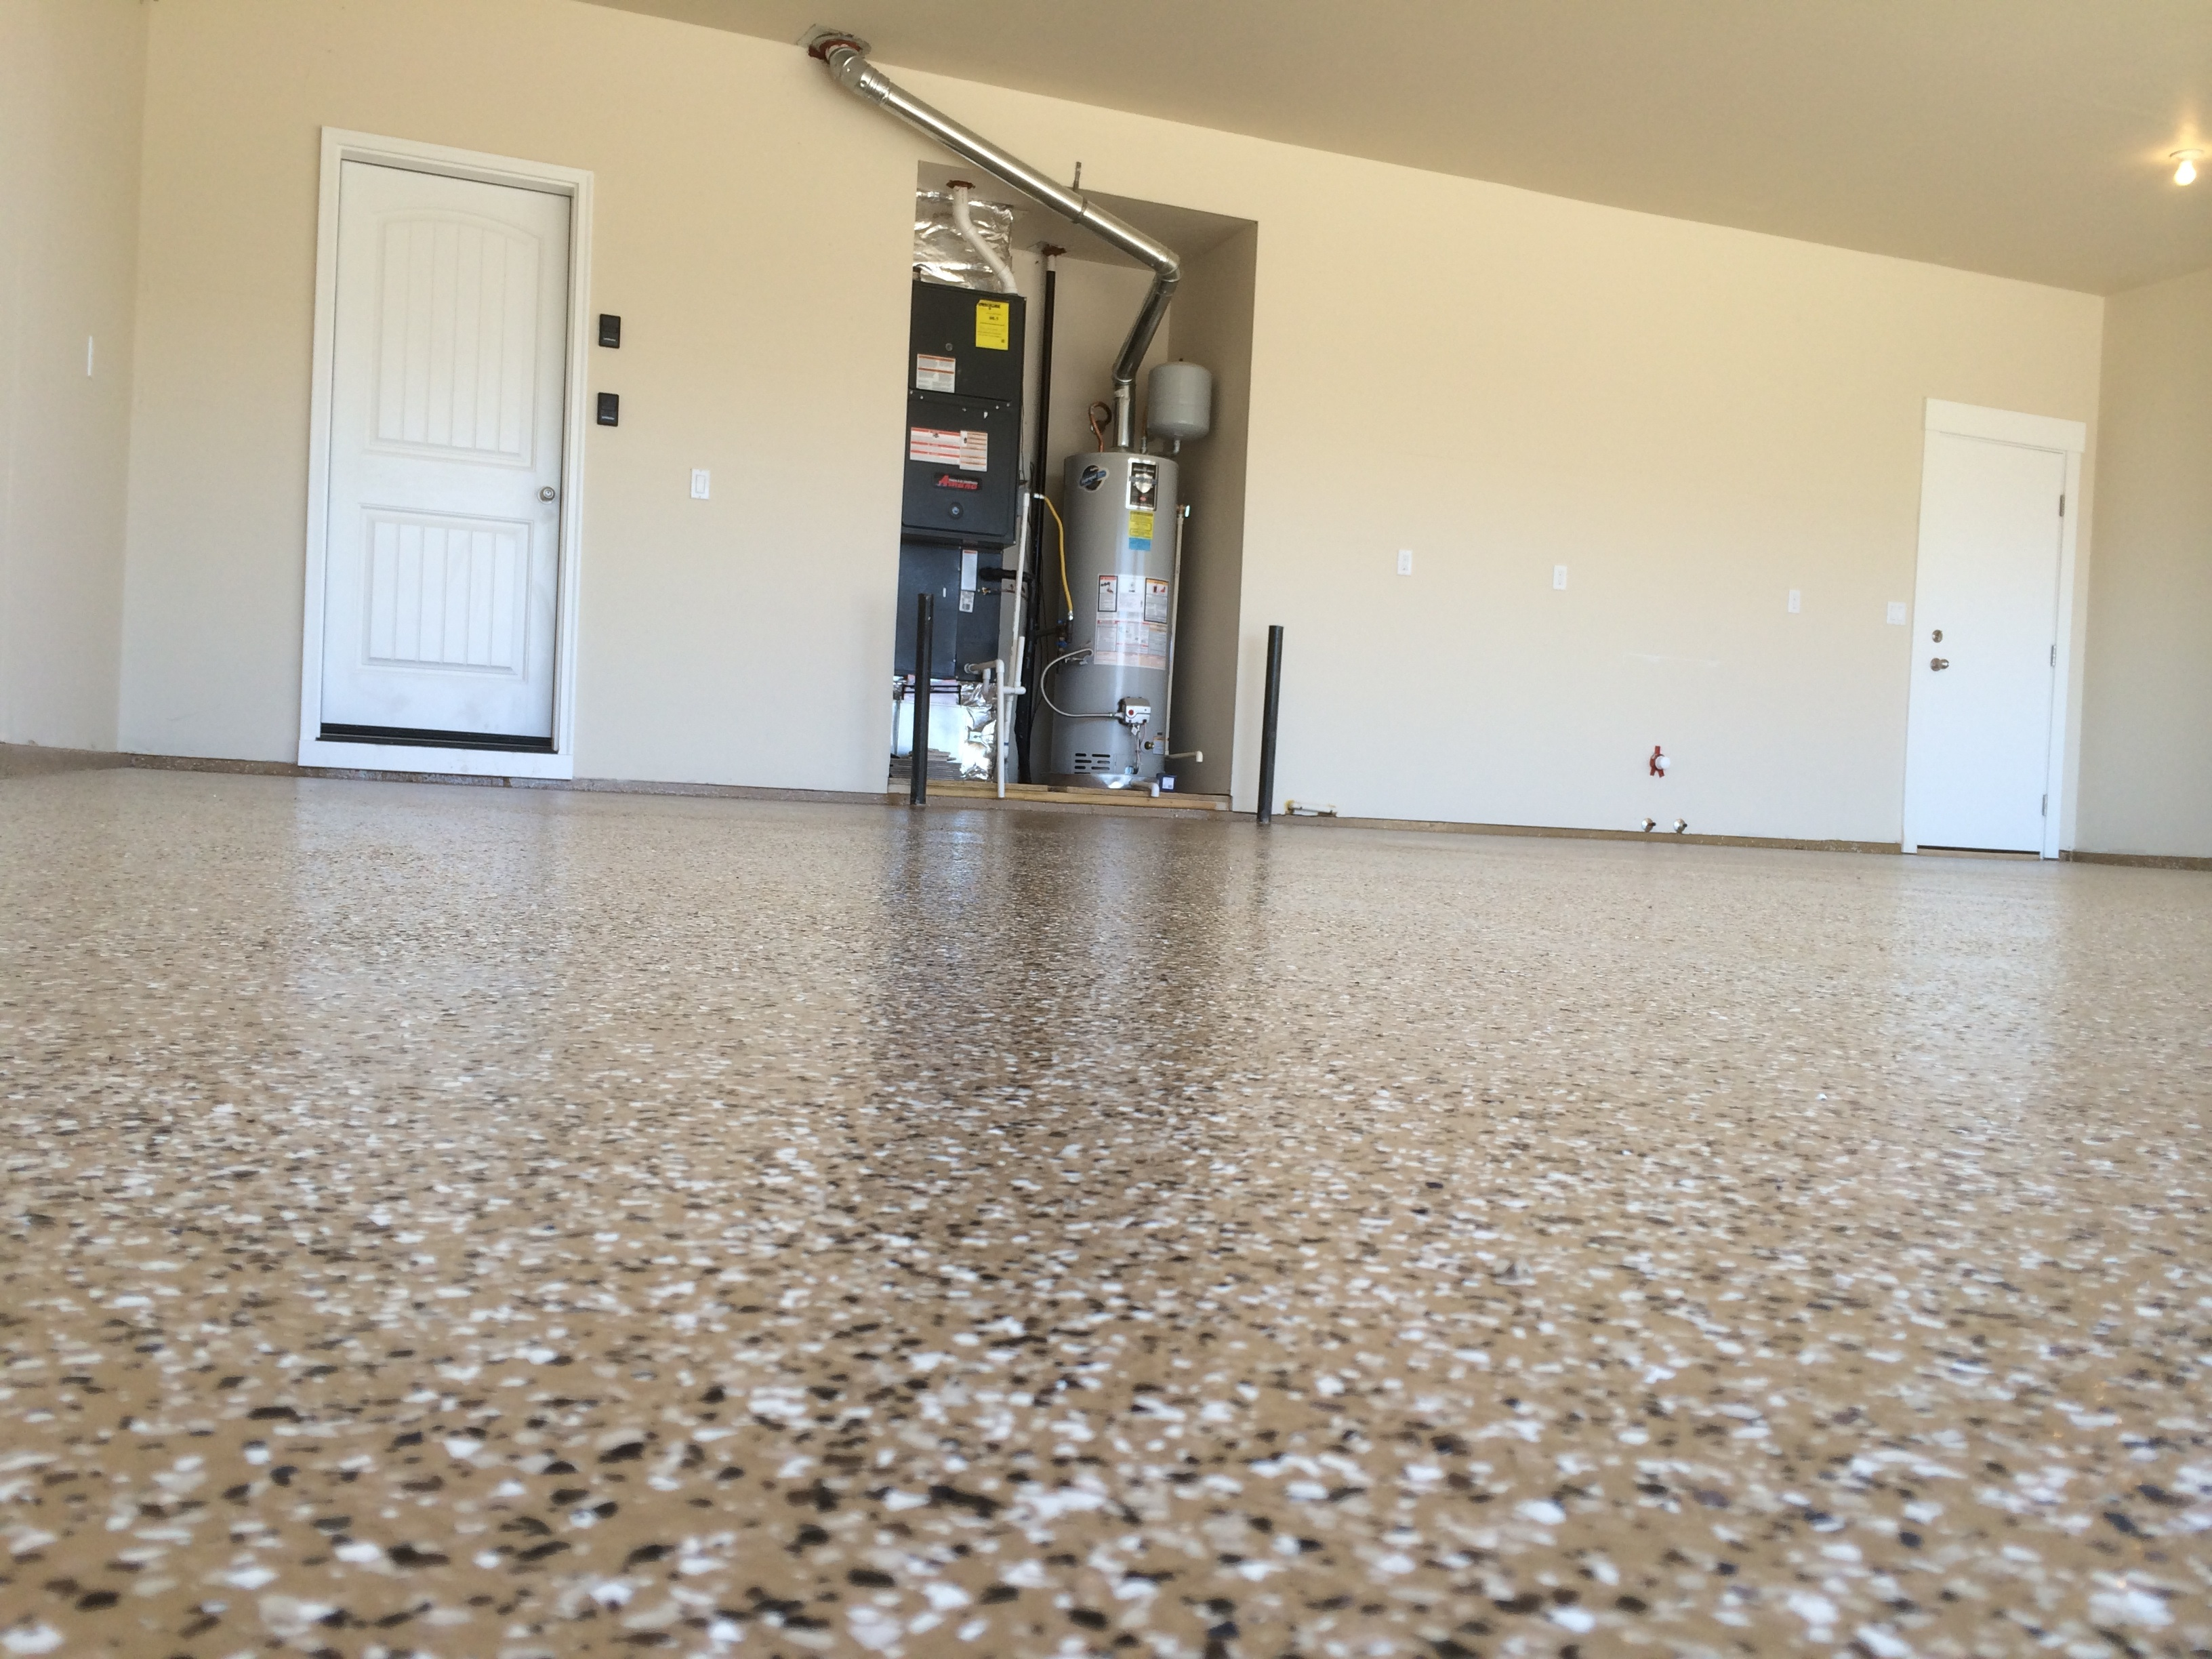 epoxy floor coating a garage in eagle idaho - How To Epoxy Garage Floor